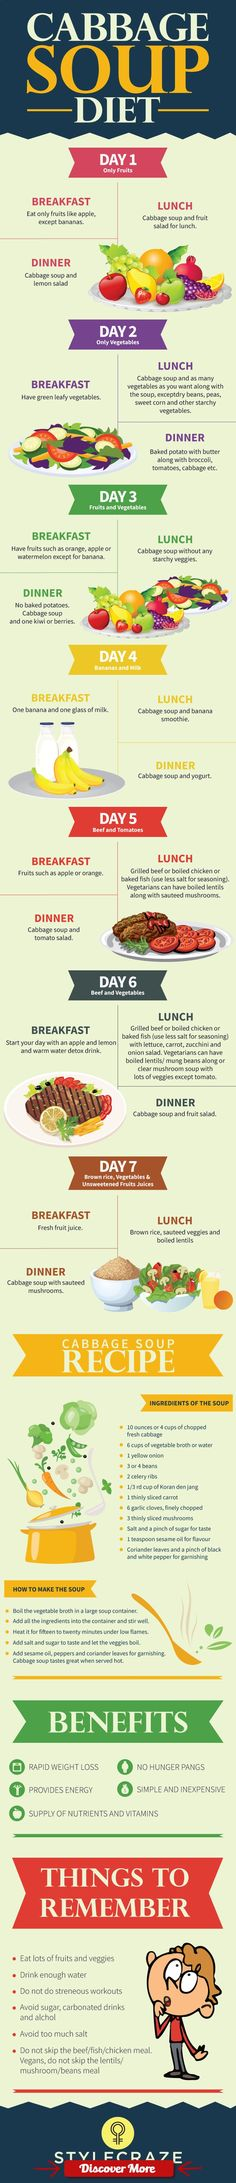 Cabbage Soup Diet For Rapid Weight Loss: Losing weight is one of the most challenging tasks. If you are in search of an effective diet that could help you reduce weight drastically, try the cabbage soup diet. This diet is extremely helpful for people who  http://weightlosssucesss.pw/the-5-commandments-of-smart-dieting/